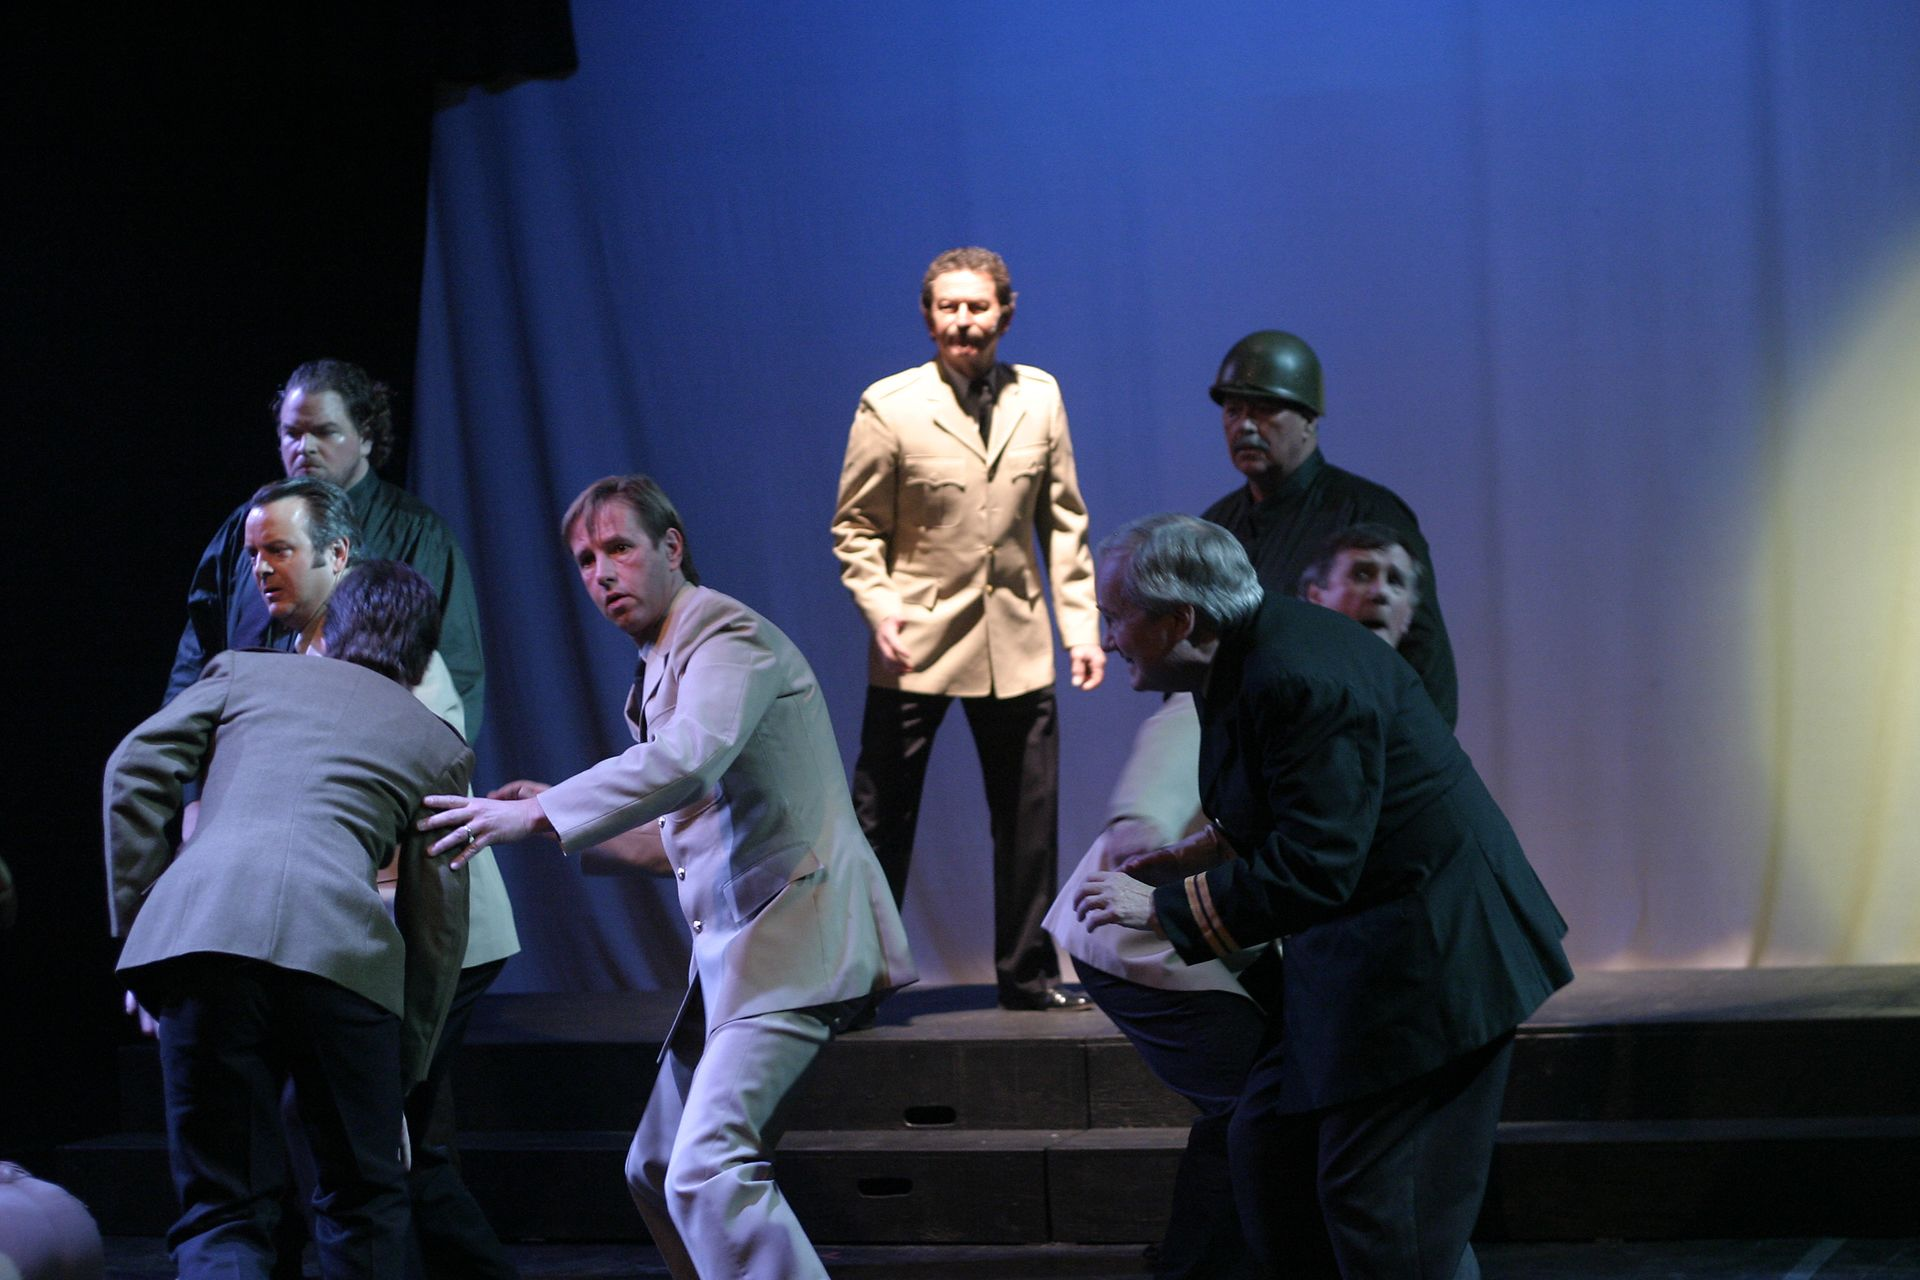 Christi Neahr, Randy Young, Heimen Van Essen, Richard Heyman, Bill Watson, Tim Elliott and David Young in Evita